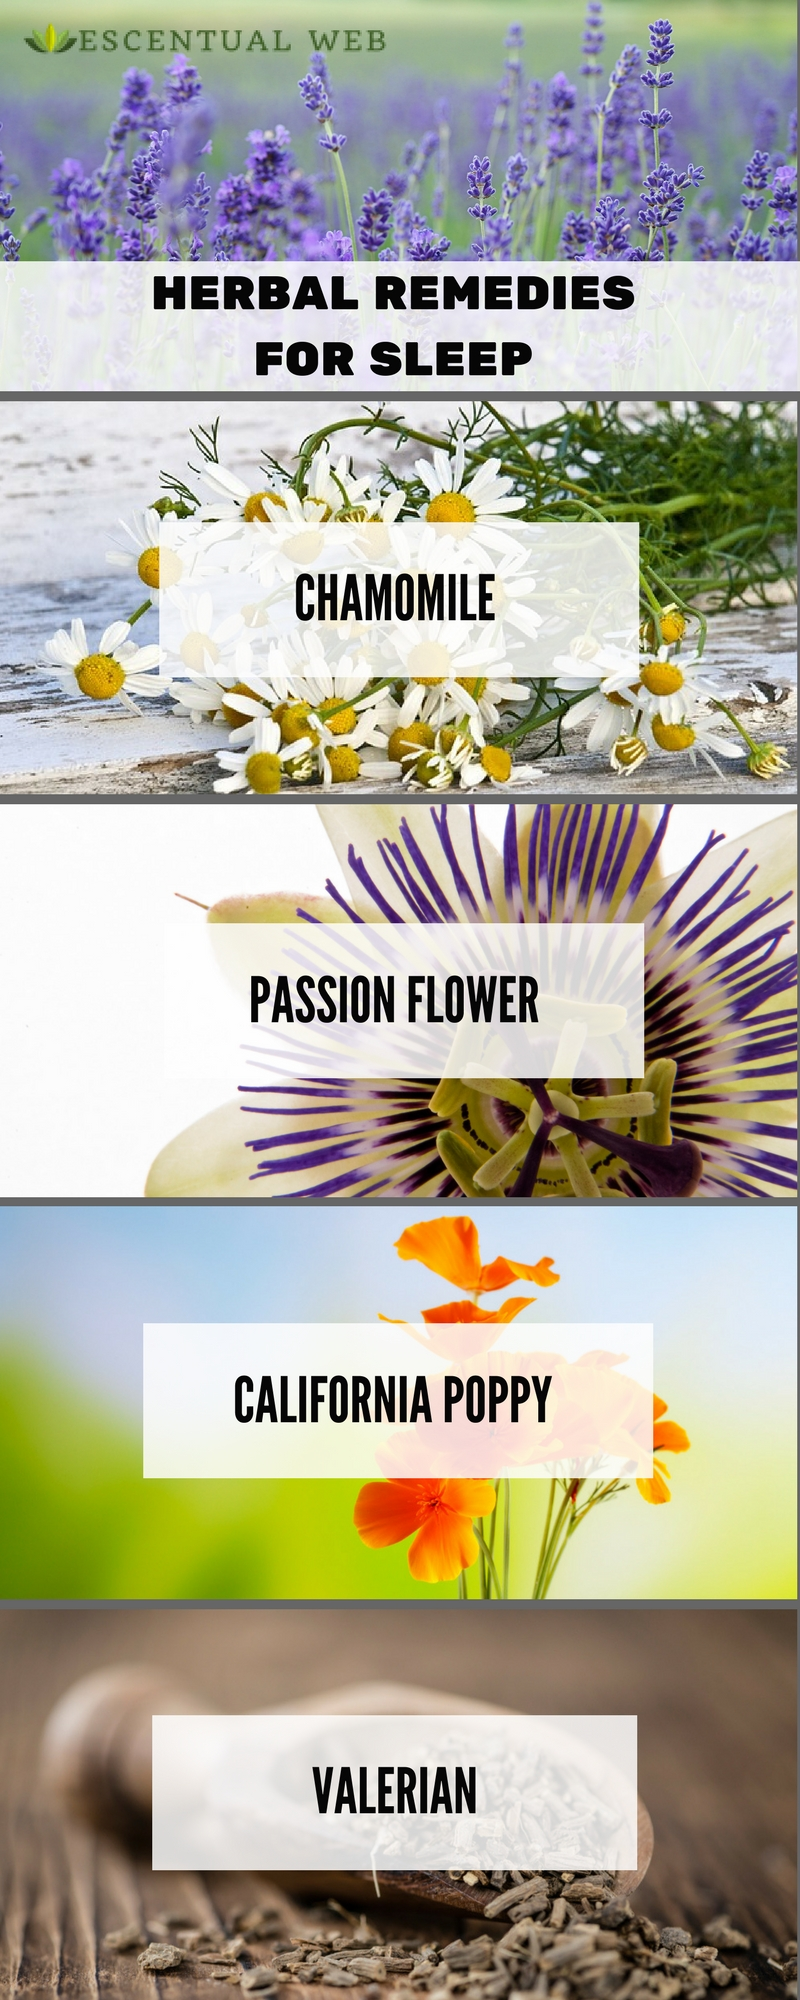 Herbs to use for insomnia